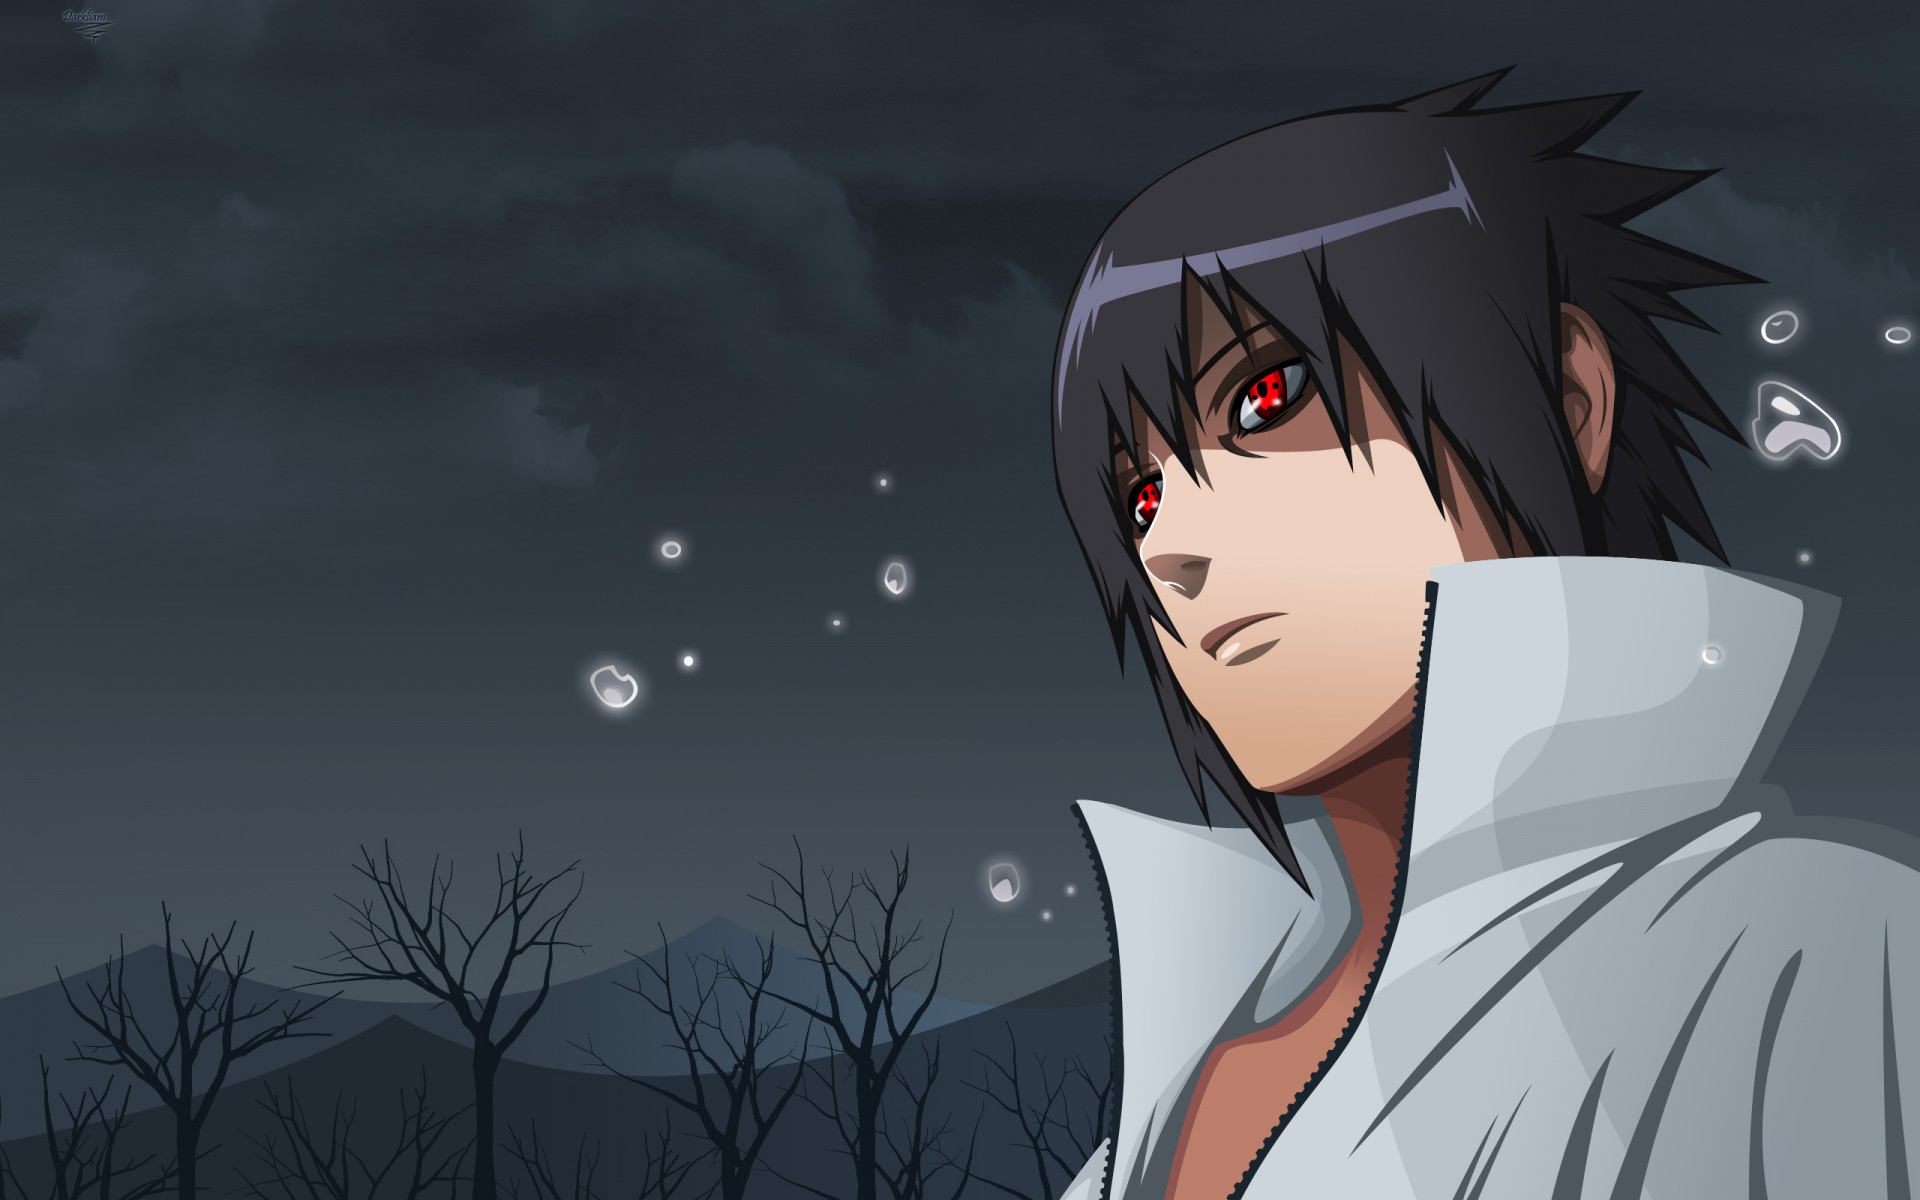 Fantastic Wallpaper Naruto Night - Uchiha  Image_46342.jpg